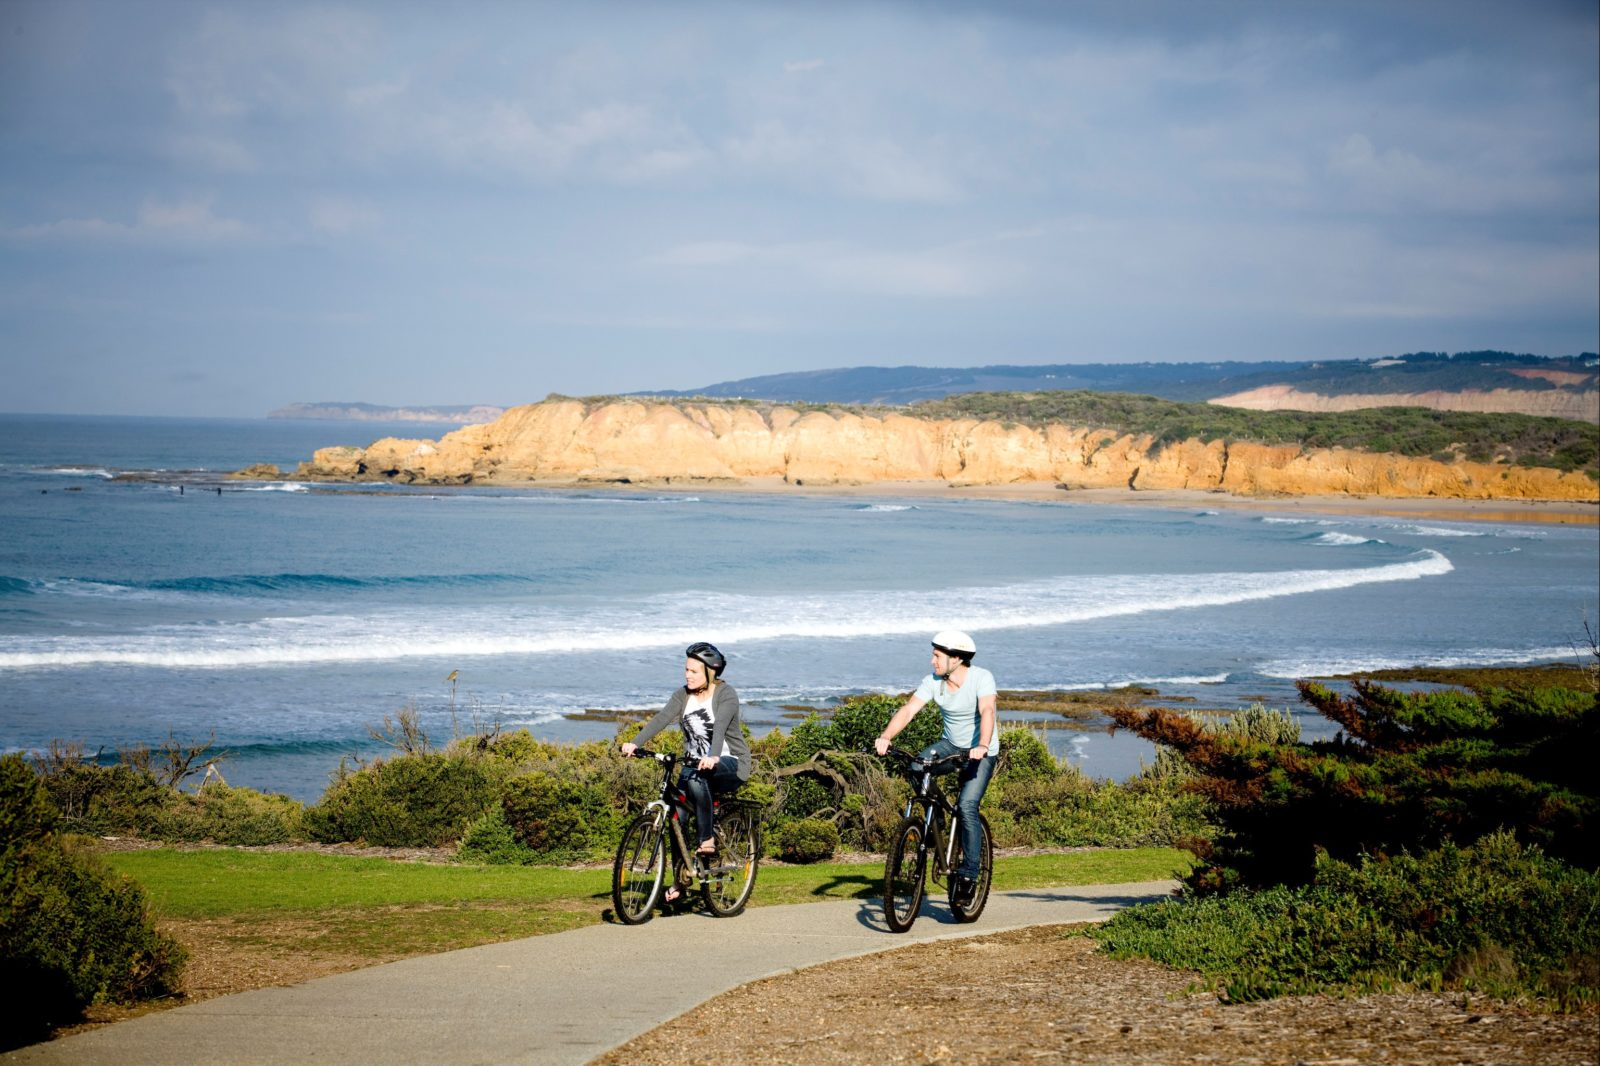 Cycle, walk or run, there is something for everyone